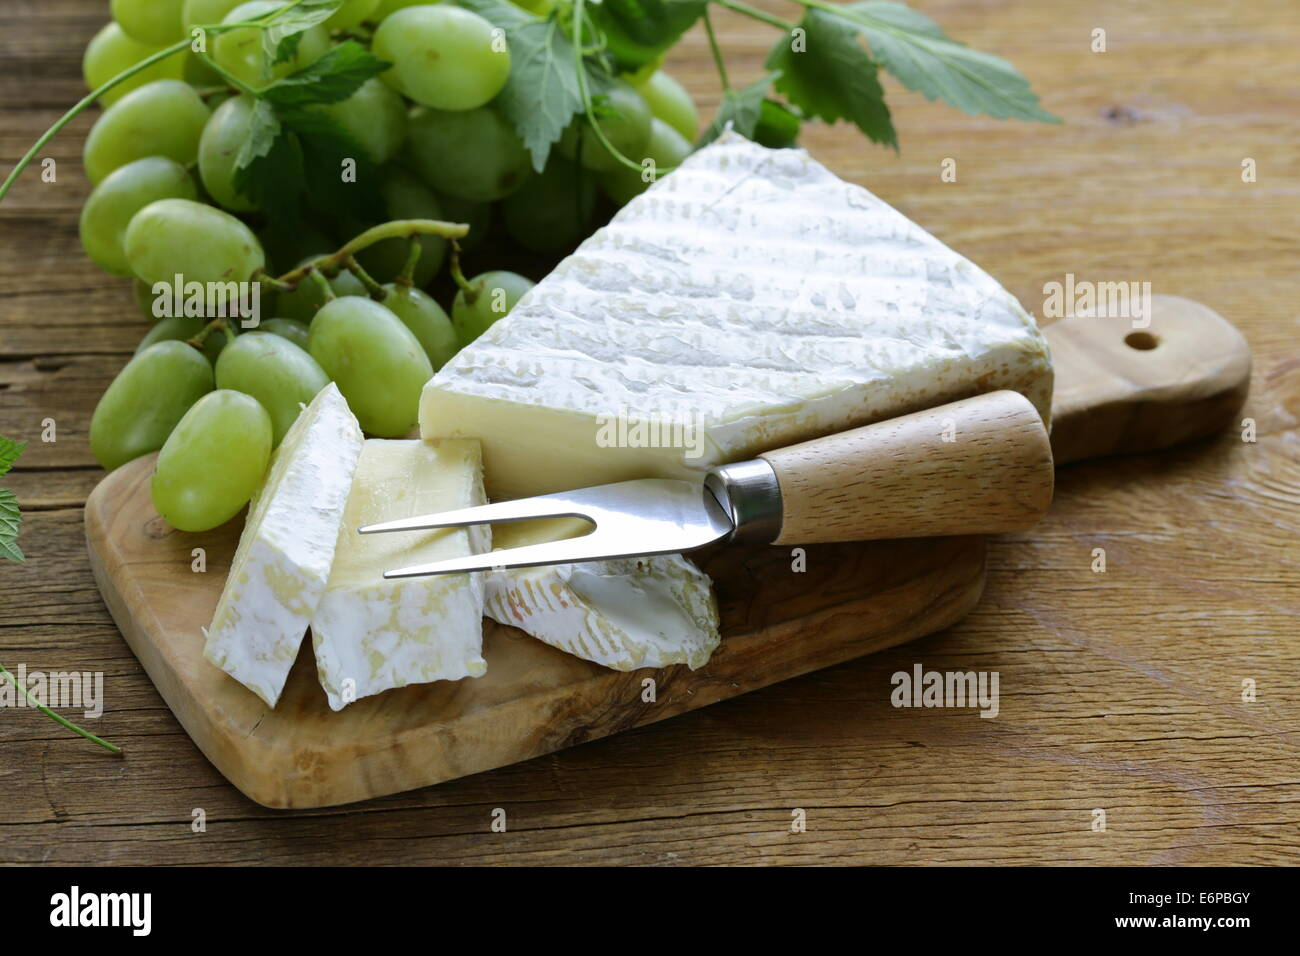 Soft brie cheese with sweet grapes on a wooden board - Stock Image